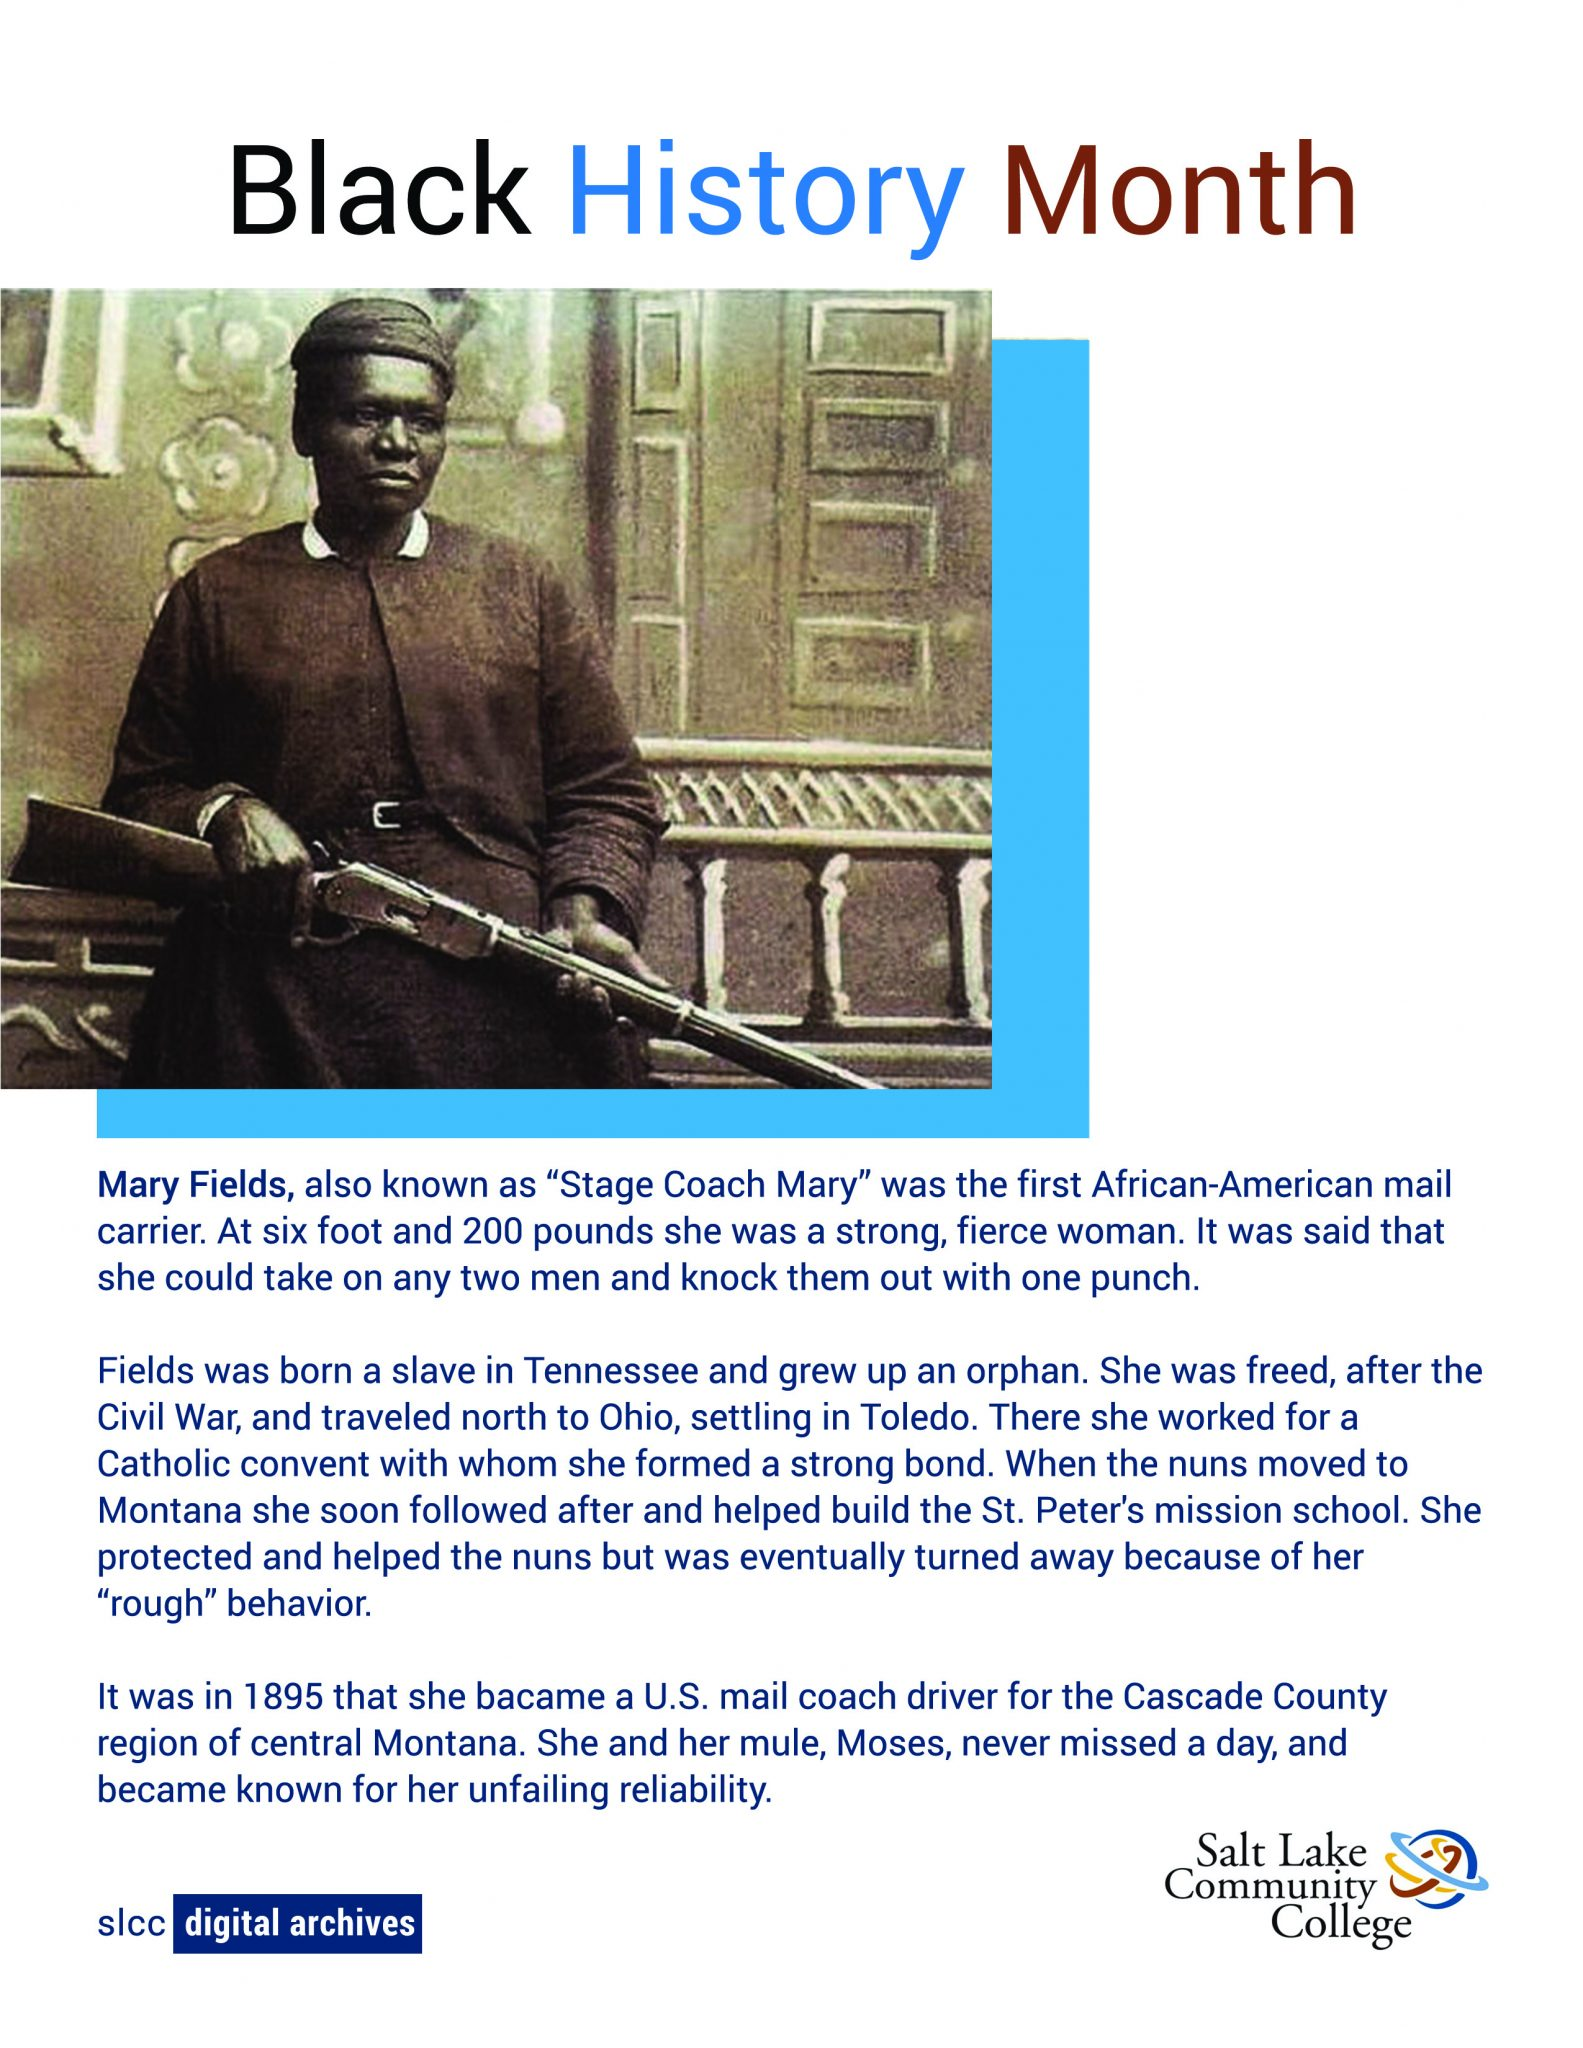 Photo of Stage Coach Mary the first African-American mail carrier